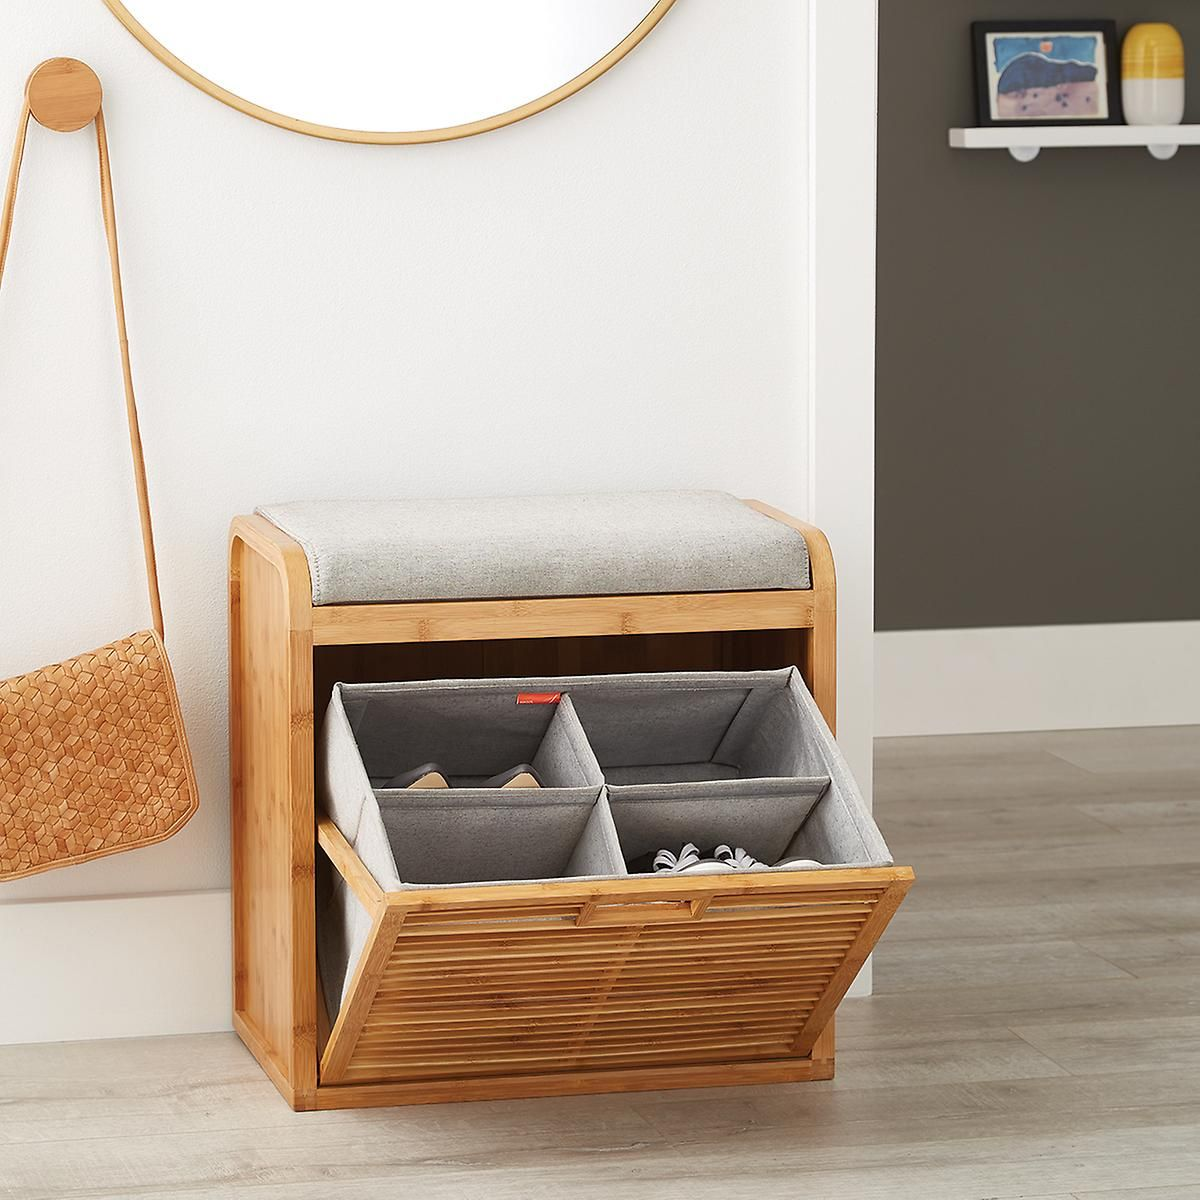 Lotus Bamboo Storage Bench Bench With Shoe Storage Bench With